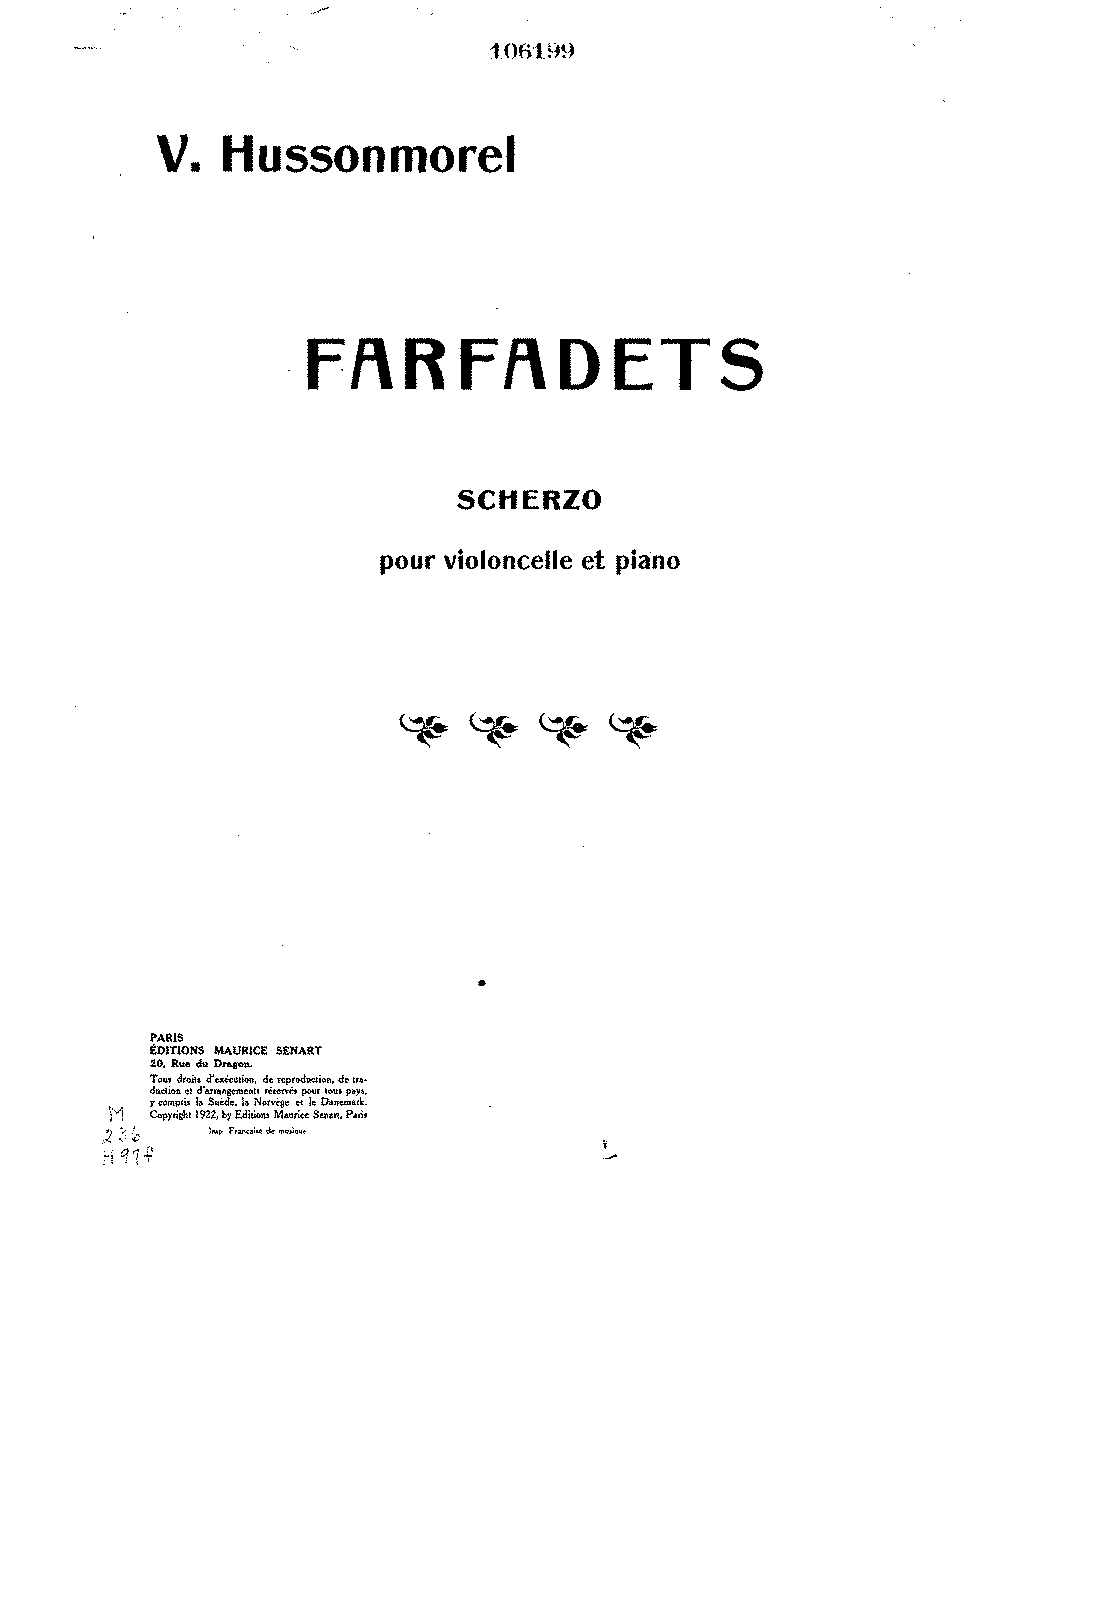 PMLP142619-Hussonmorel - Farfadets Scherzo for Cello and Piano (Extrait from Sonate for solo Cello 2nd cello ad lib) piano score.pdf